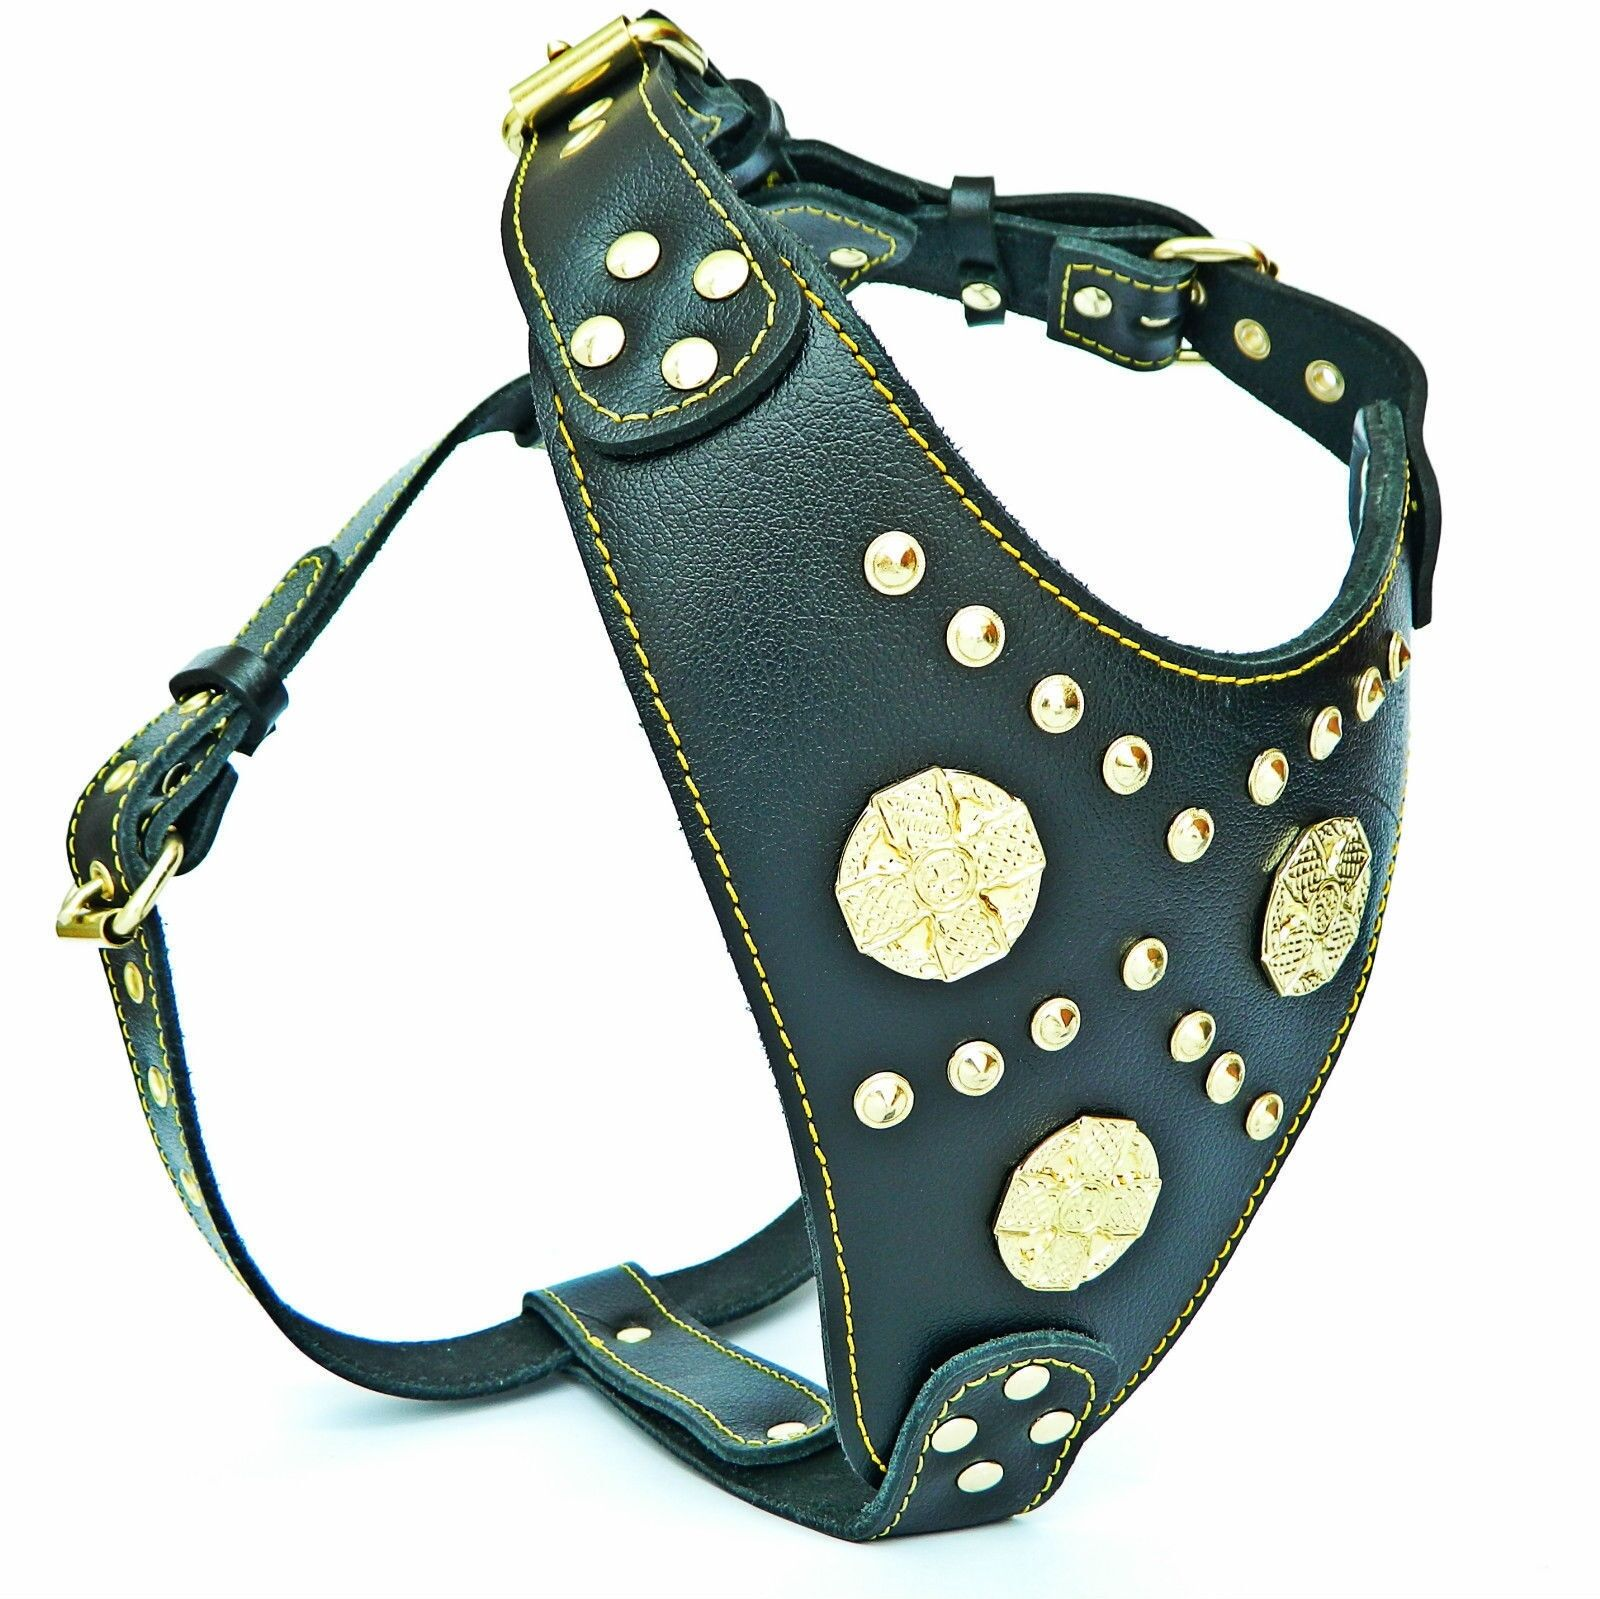 Genuine leather chest plate harness. studded design. padded. large breeds L,XL